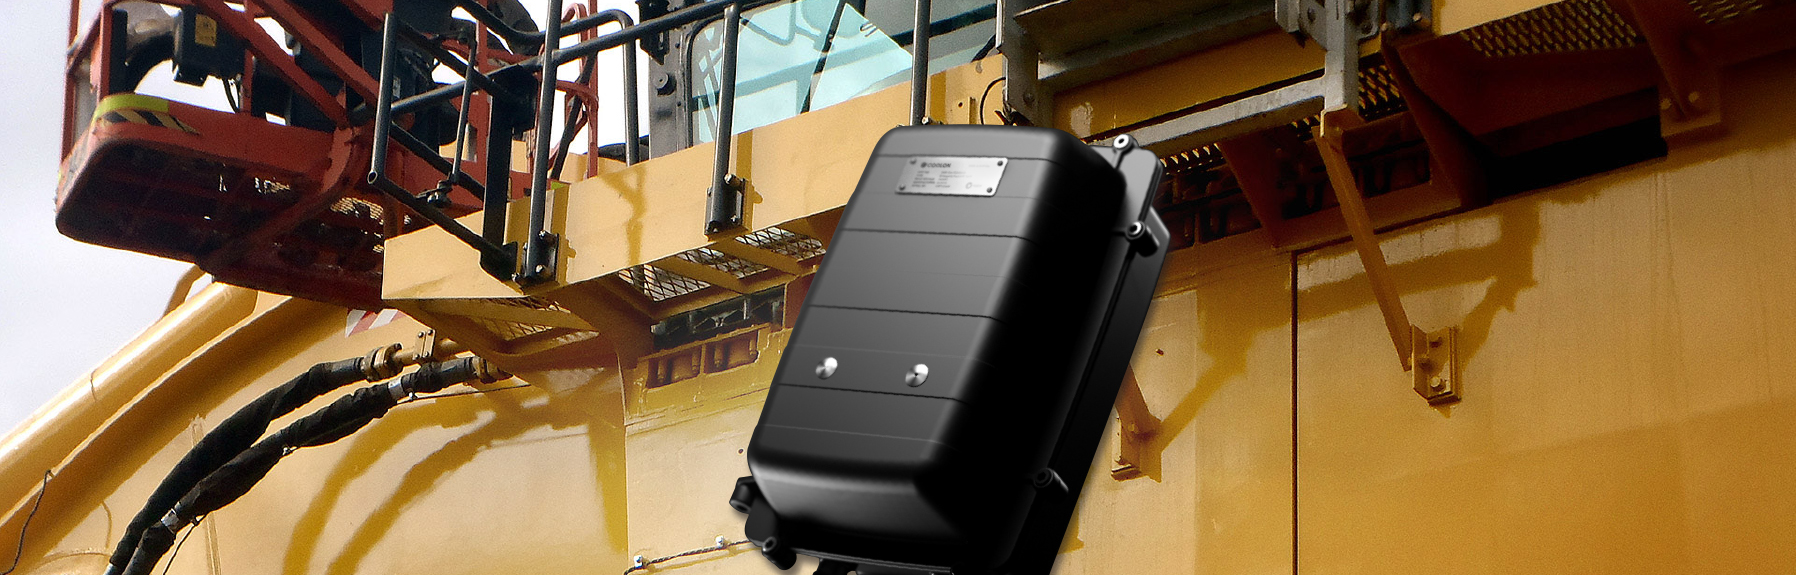 The Extra Low Voltage Emergency Power Pack provides backup battery power to compatible Coolon industrial lights to continue operating in emergency mode in the event of a machine power failure.